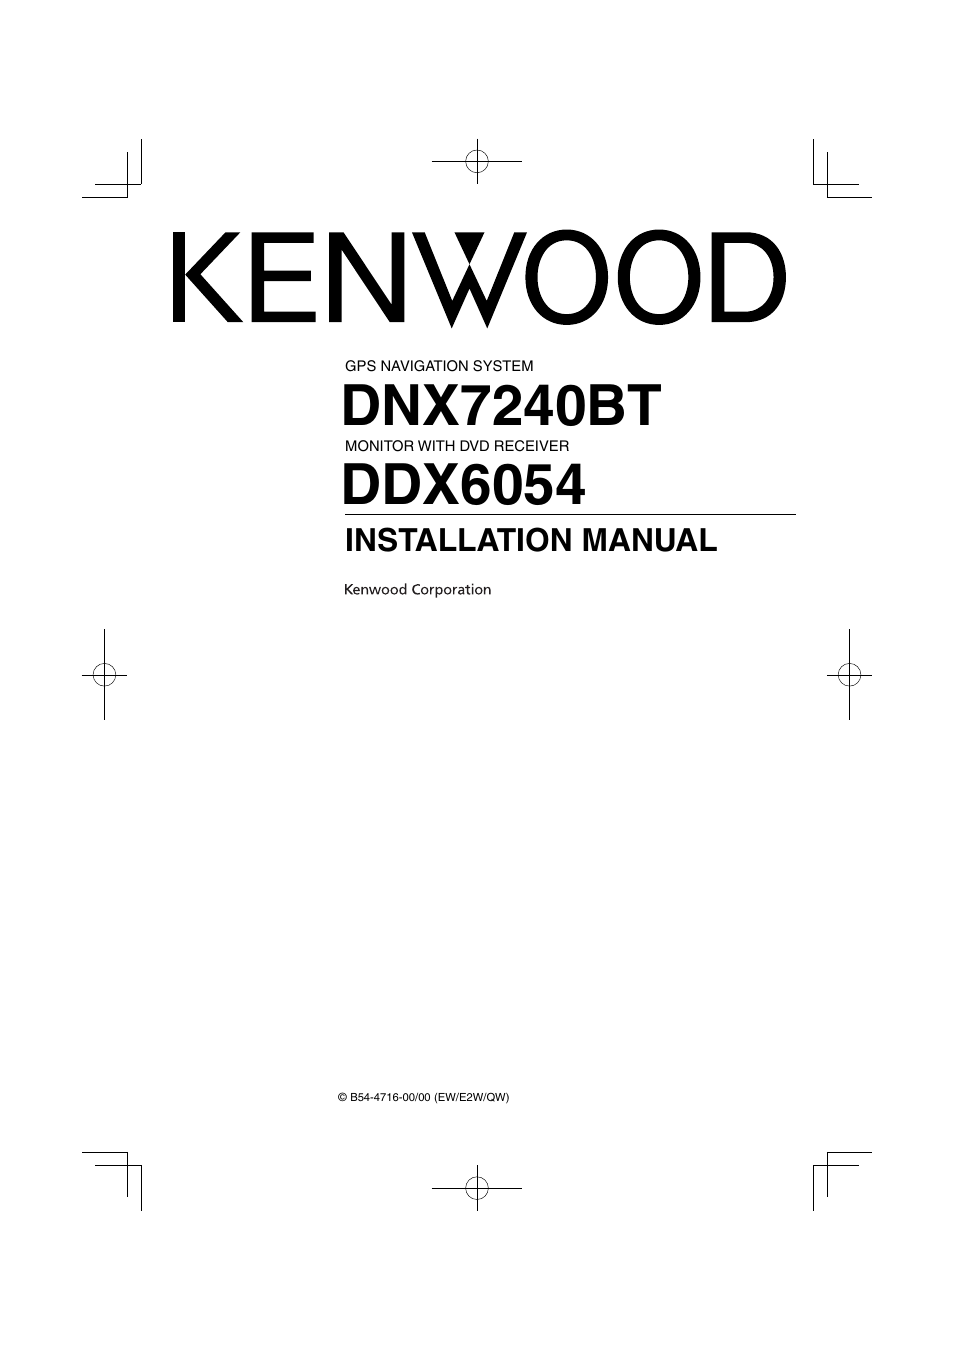 Kenwood dnx7240bt user manual 12 pages sciox Gallery